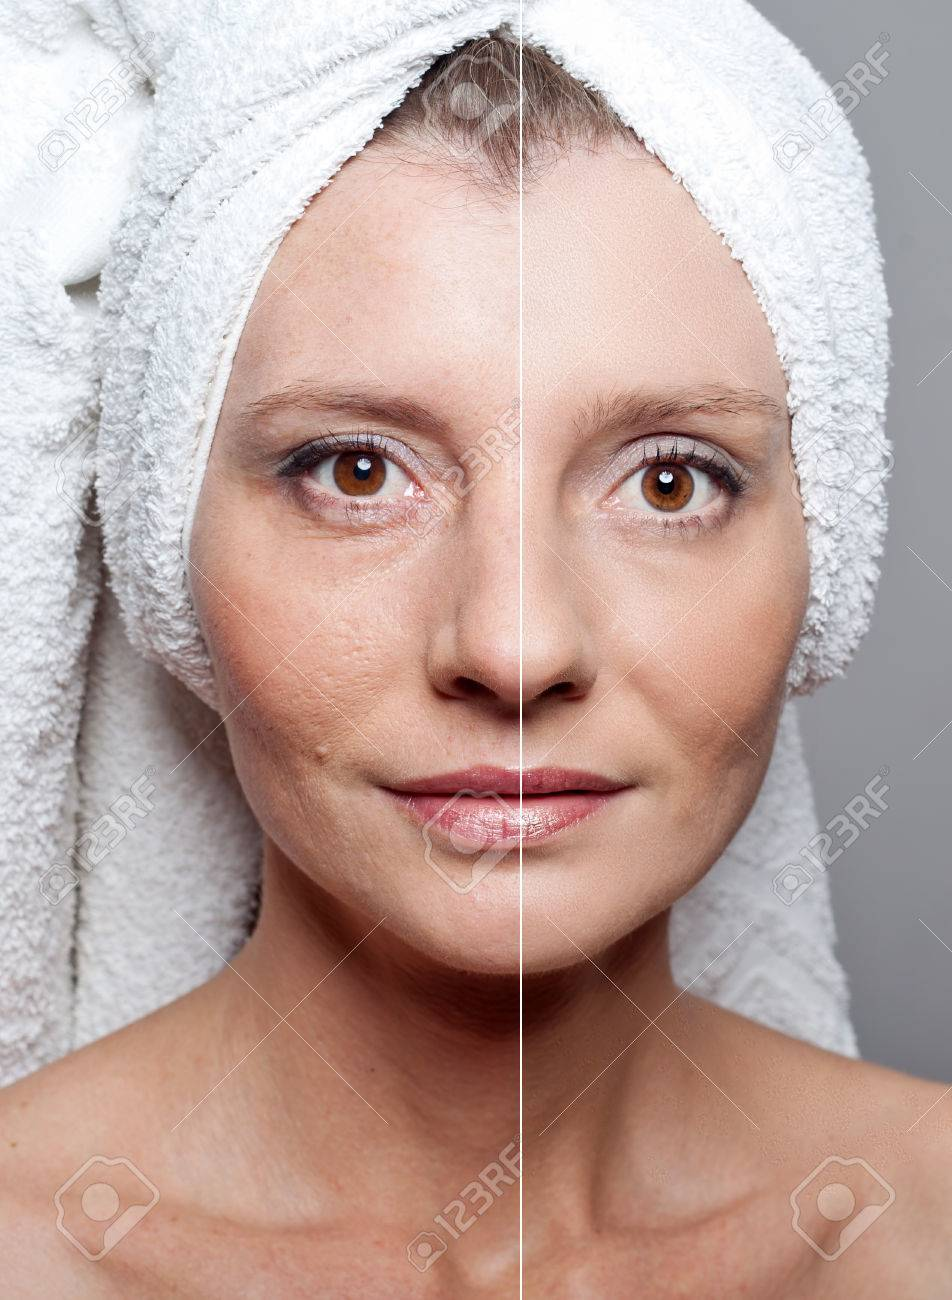 Beauty concept - skin care, anti-aging procedures, rejuvenation, lifting, tightening of facial skin - 47692982